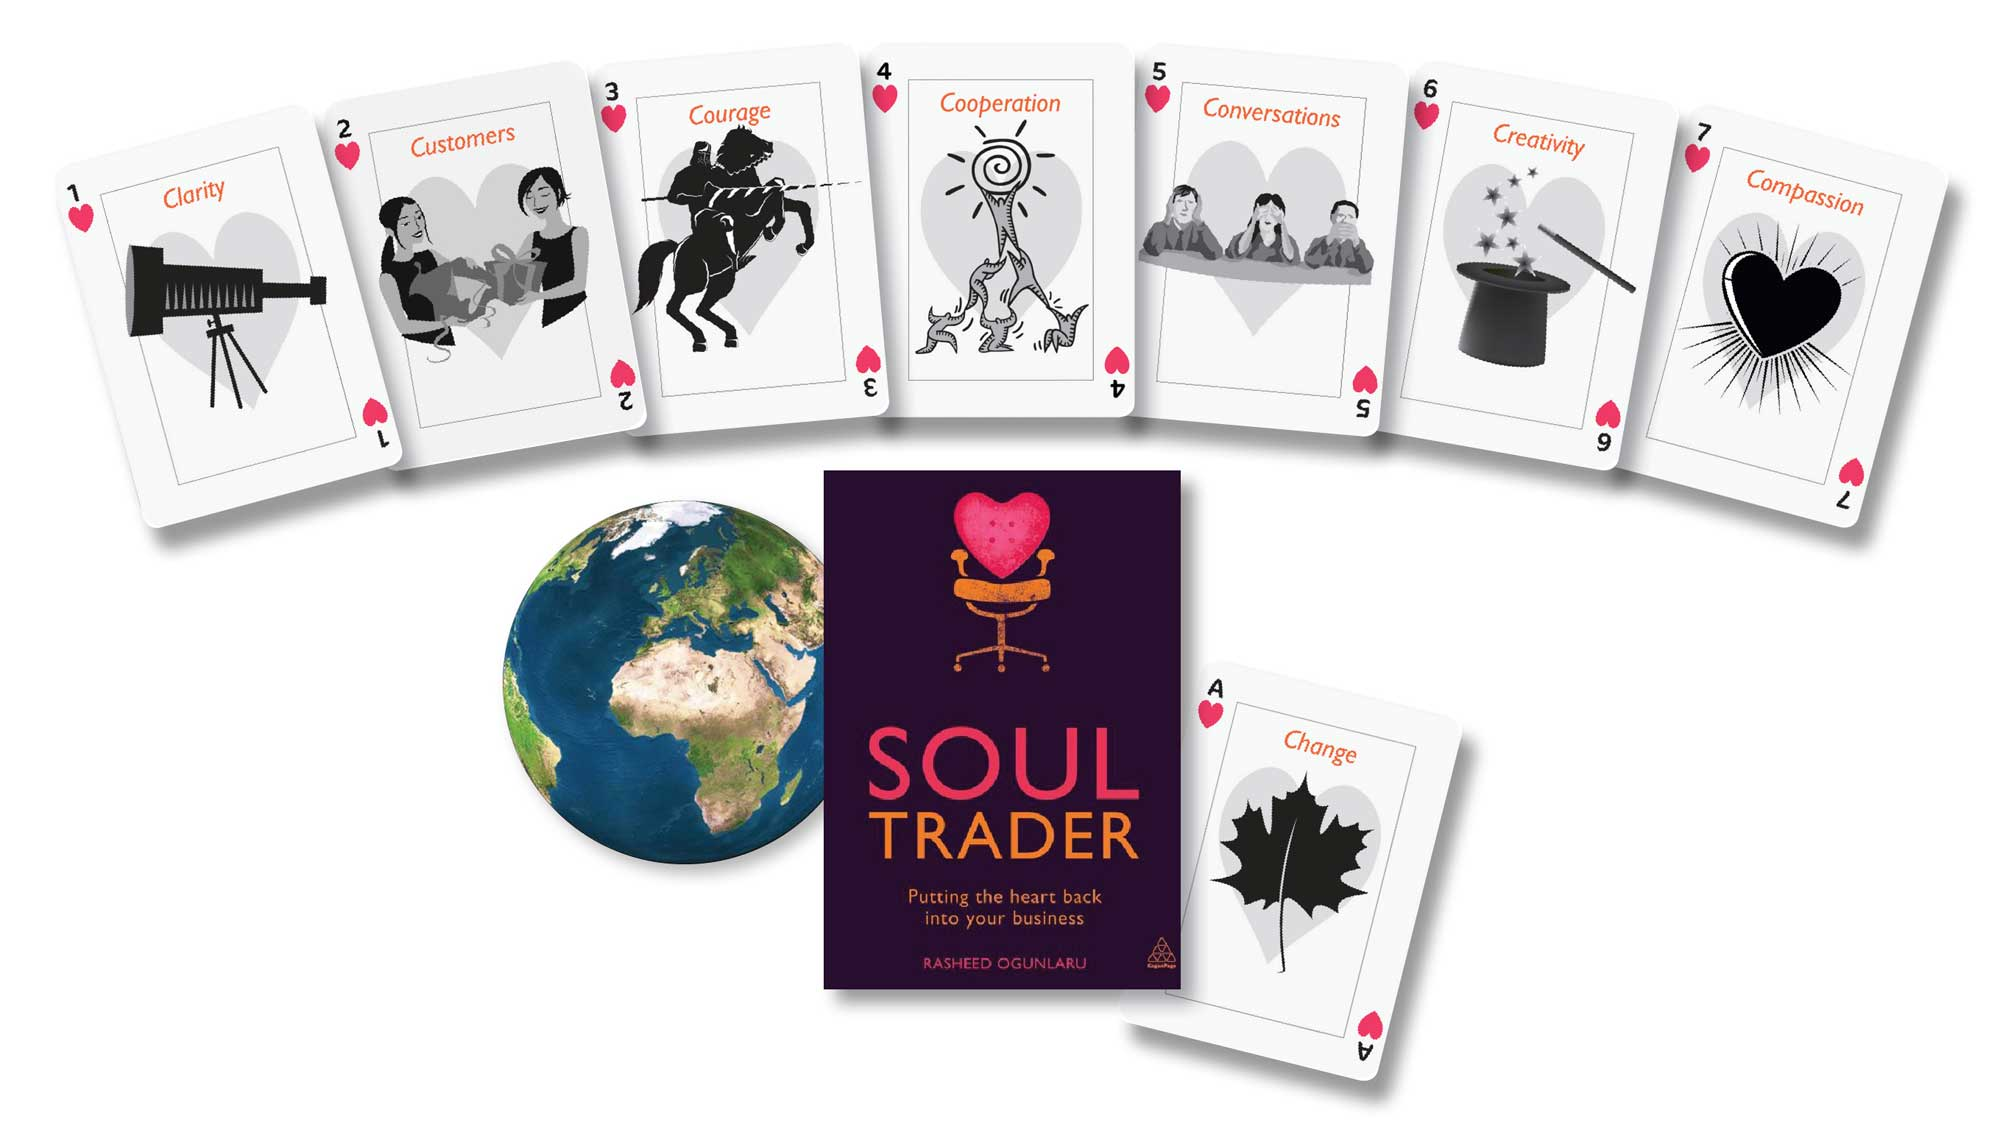 A new approach to business:  7 Soul Trader steps / principles